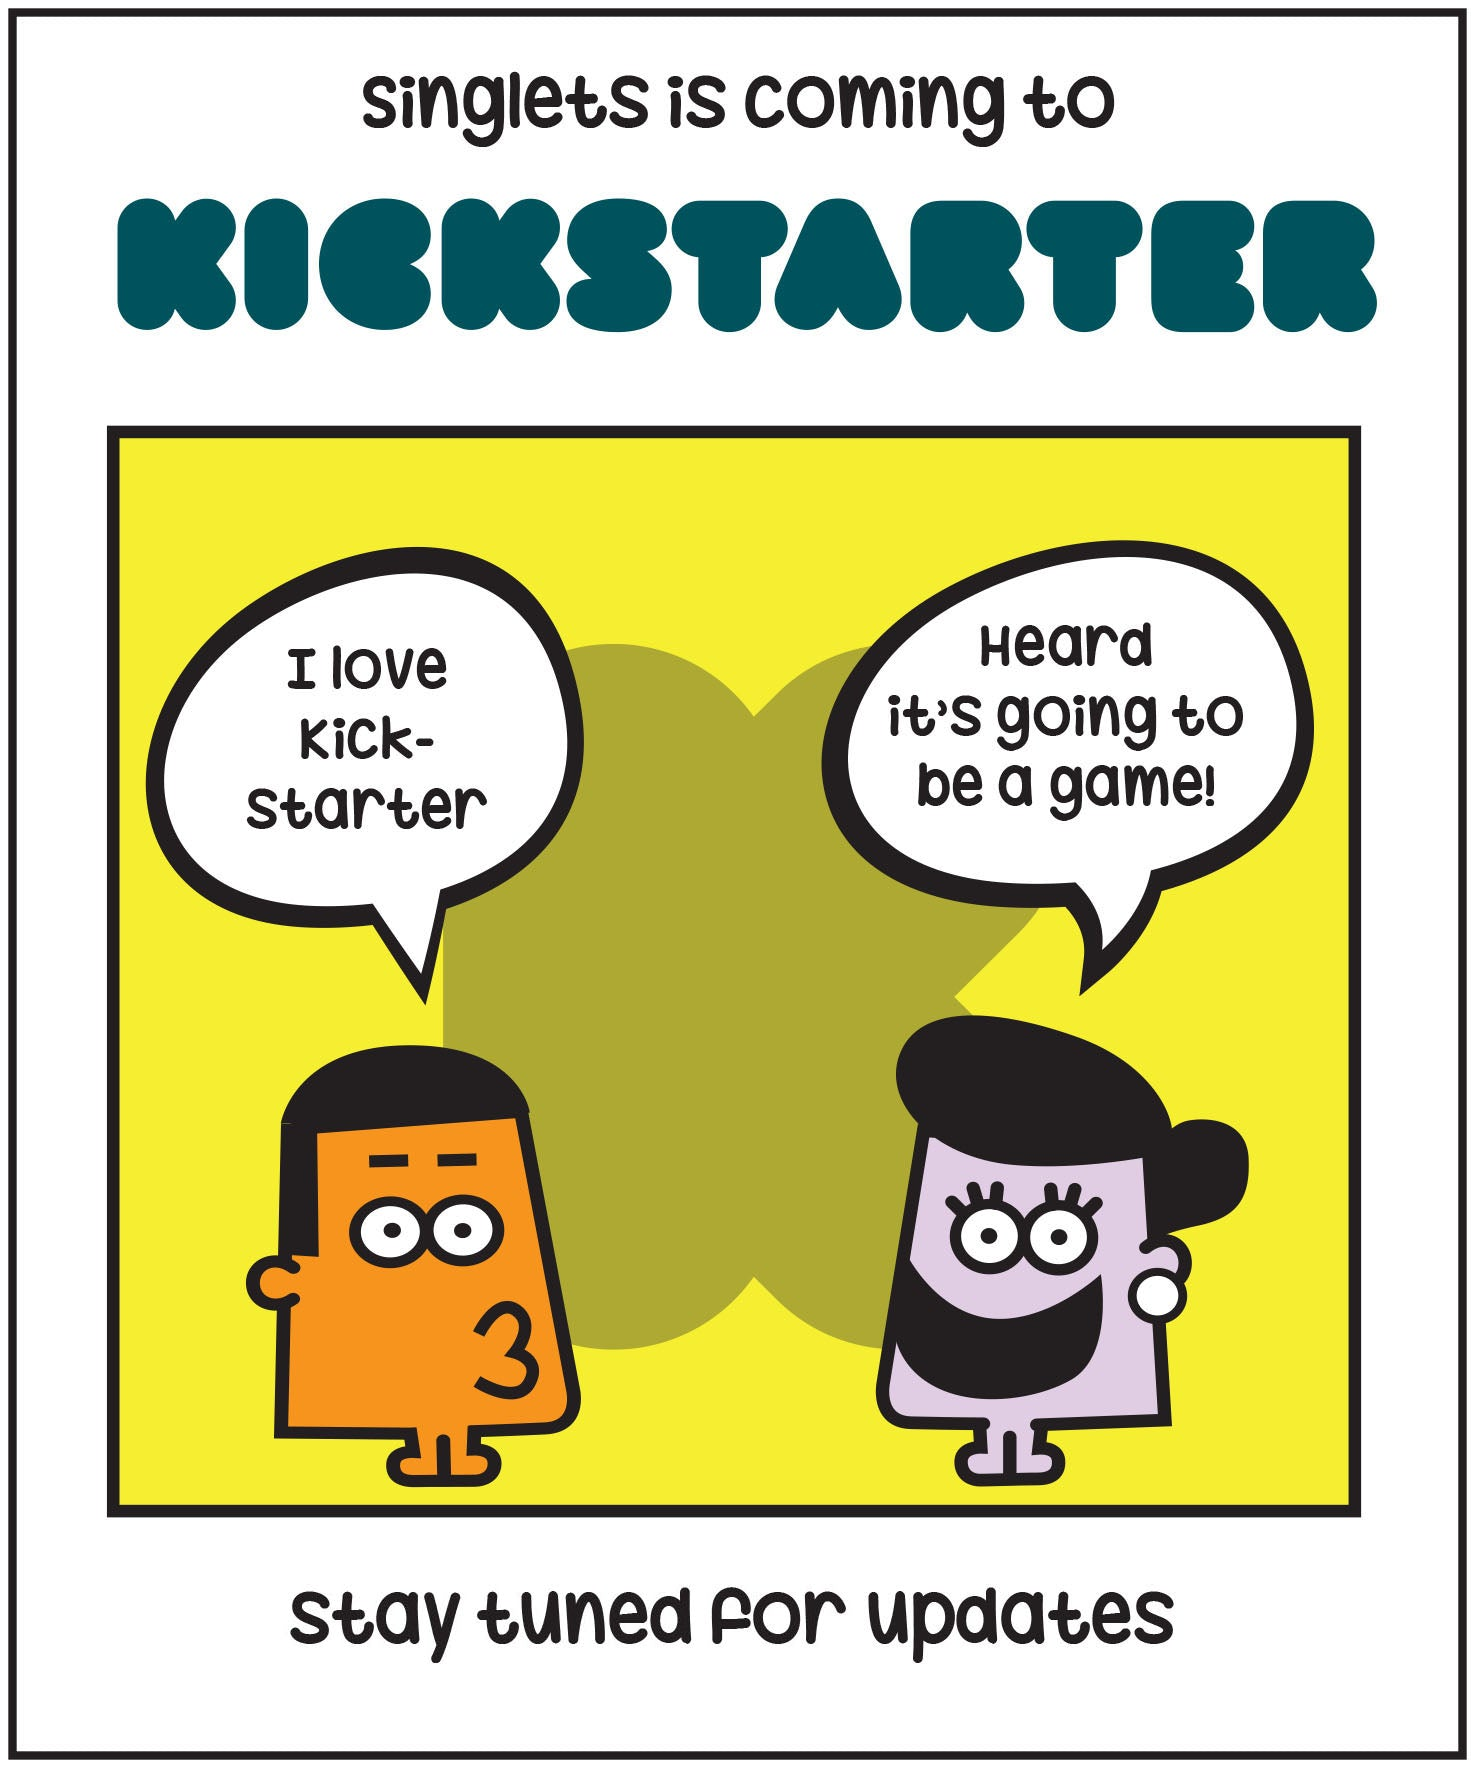 Our very first kickstarter project